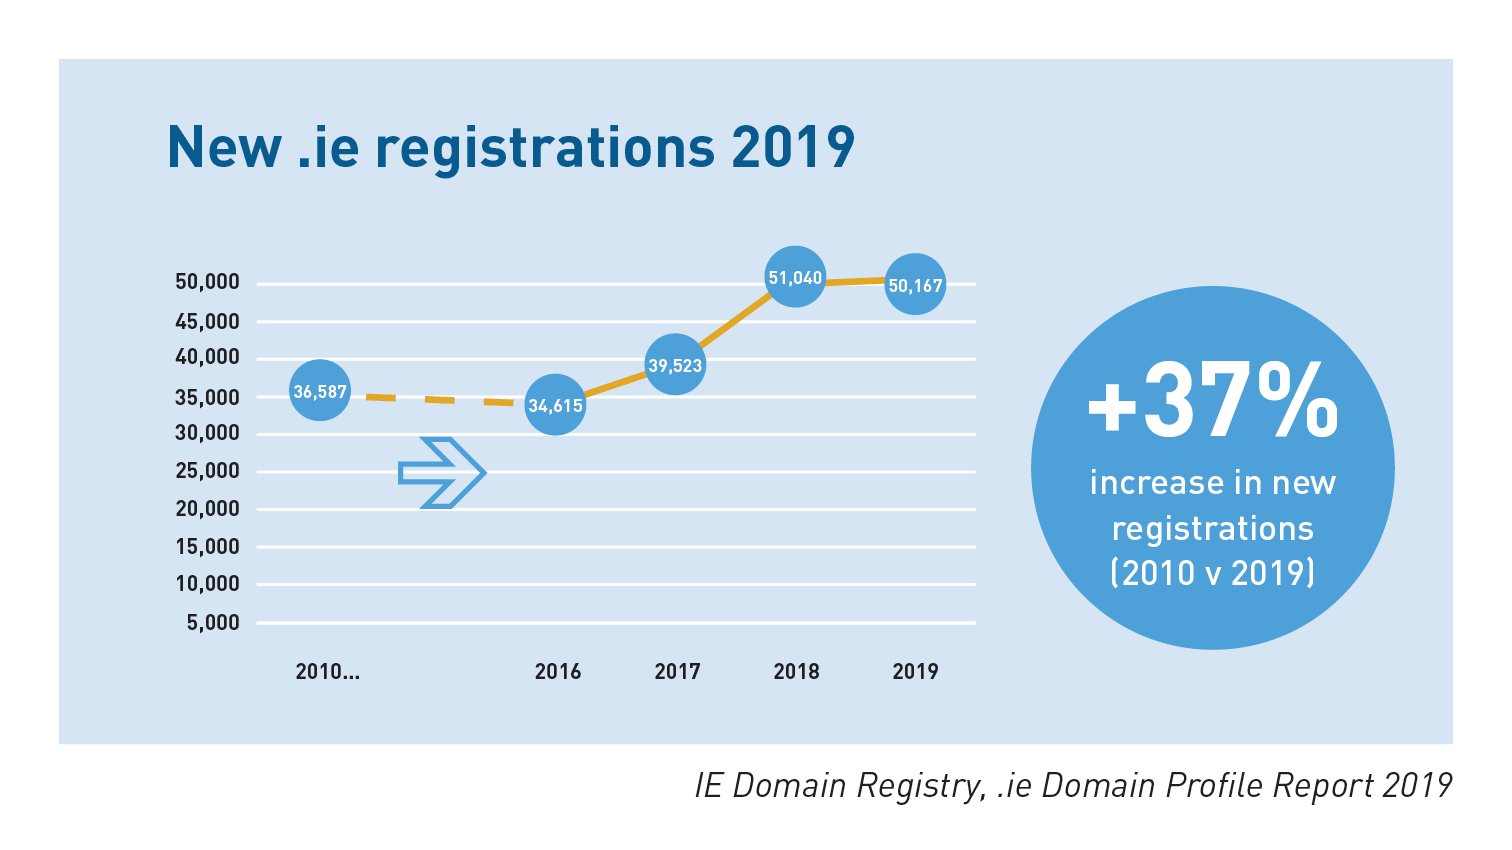 .ie Domain Profile Report 2019 New .ie registrations